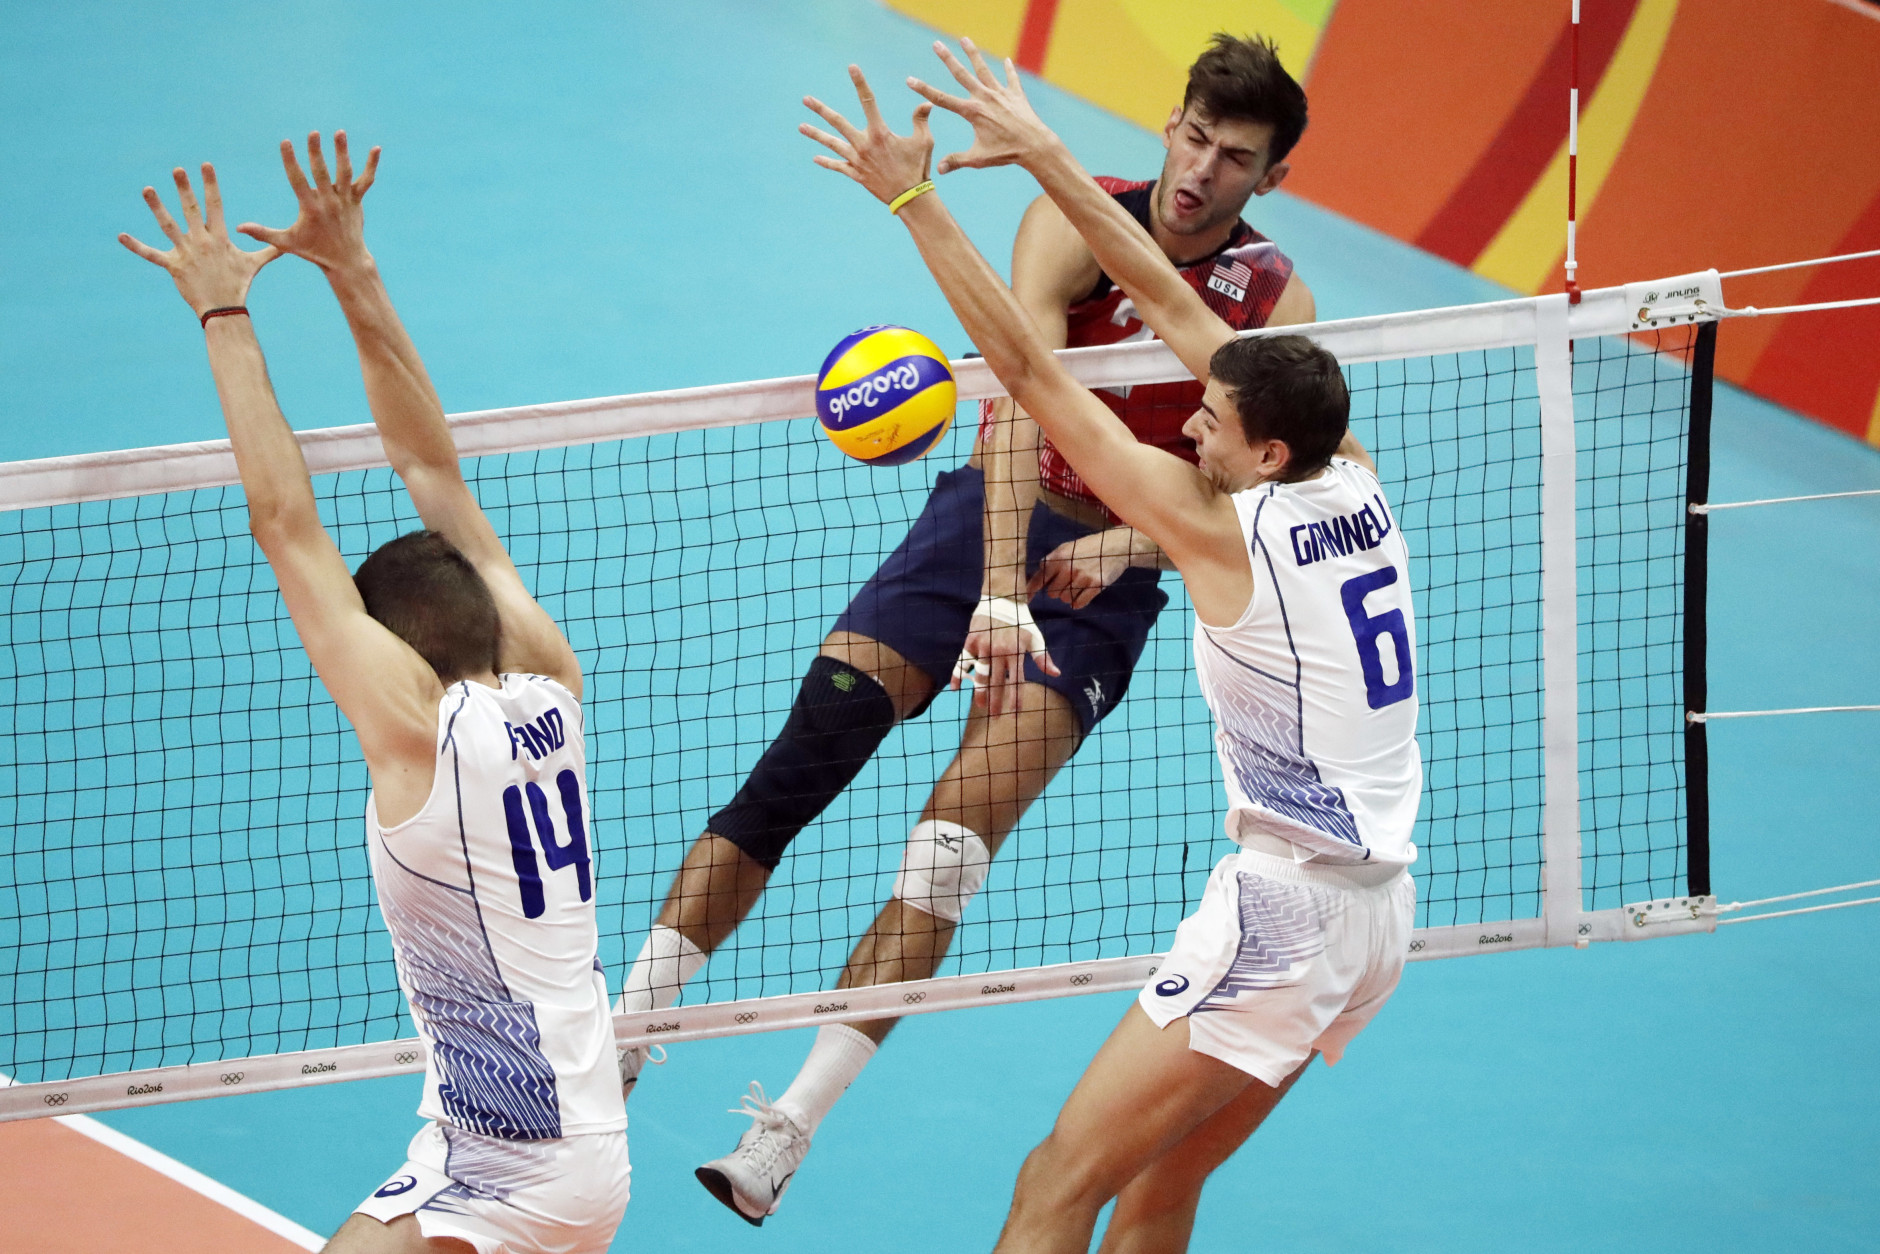 United States' Aaron Russell, top right, spikes the ball as Italy's Simone Giannelli (6) and Matteo Piano block during a men's preliminary volleyball match at the 2016 Summer Olympics in Rio de Janeiro, Brazil, Tuesday, Aug. 9, 2016. (AP Photo/Matt Rourke)